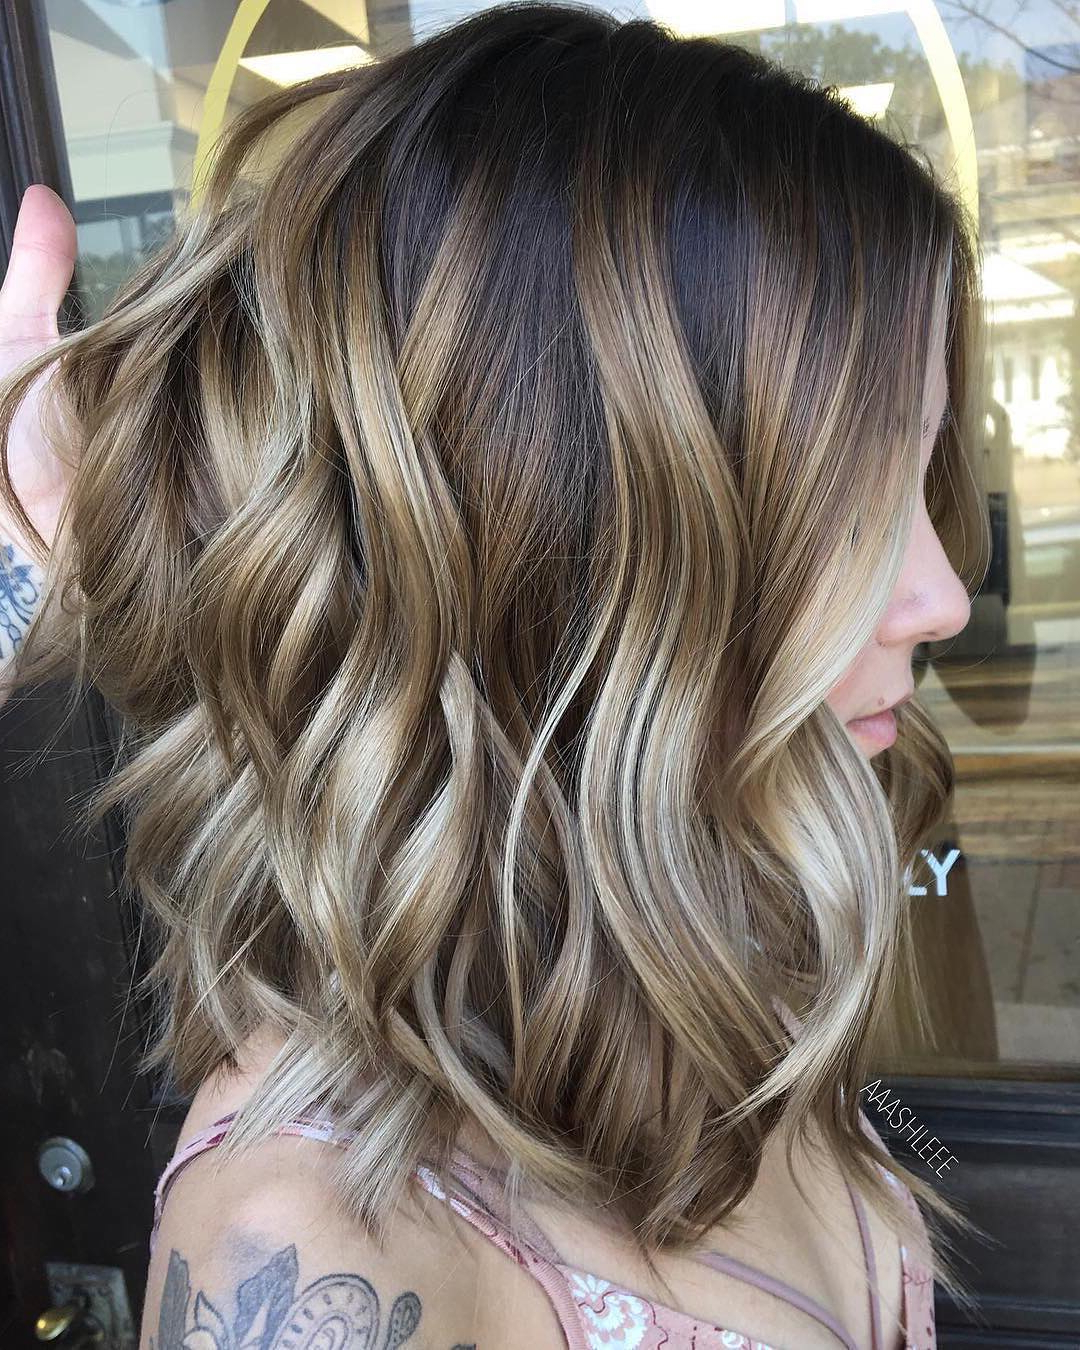 10 Ombre Balayage Hairstyles For Medium Length Hair, Hair For Most Up To Date Ash Bronde Ombre Hairstyles (View 5 of 20)